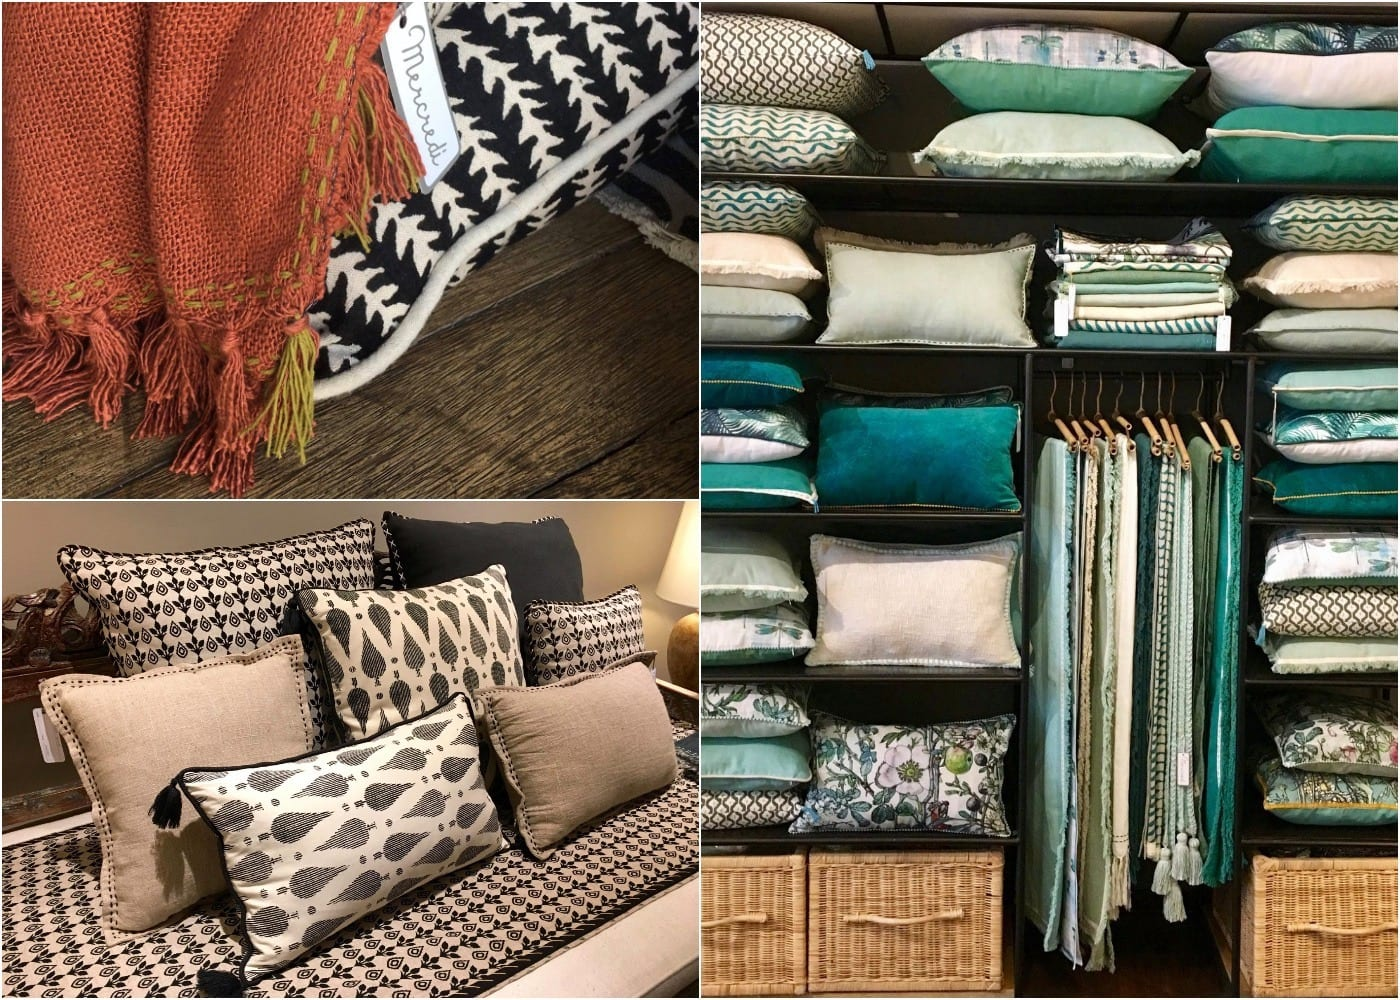 Pillows, blankets and throws from Mercredi in Seminyak, Bali, Indonesia